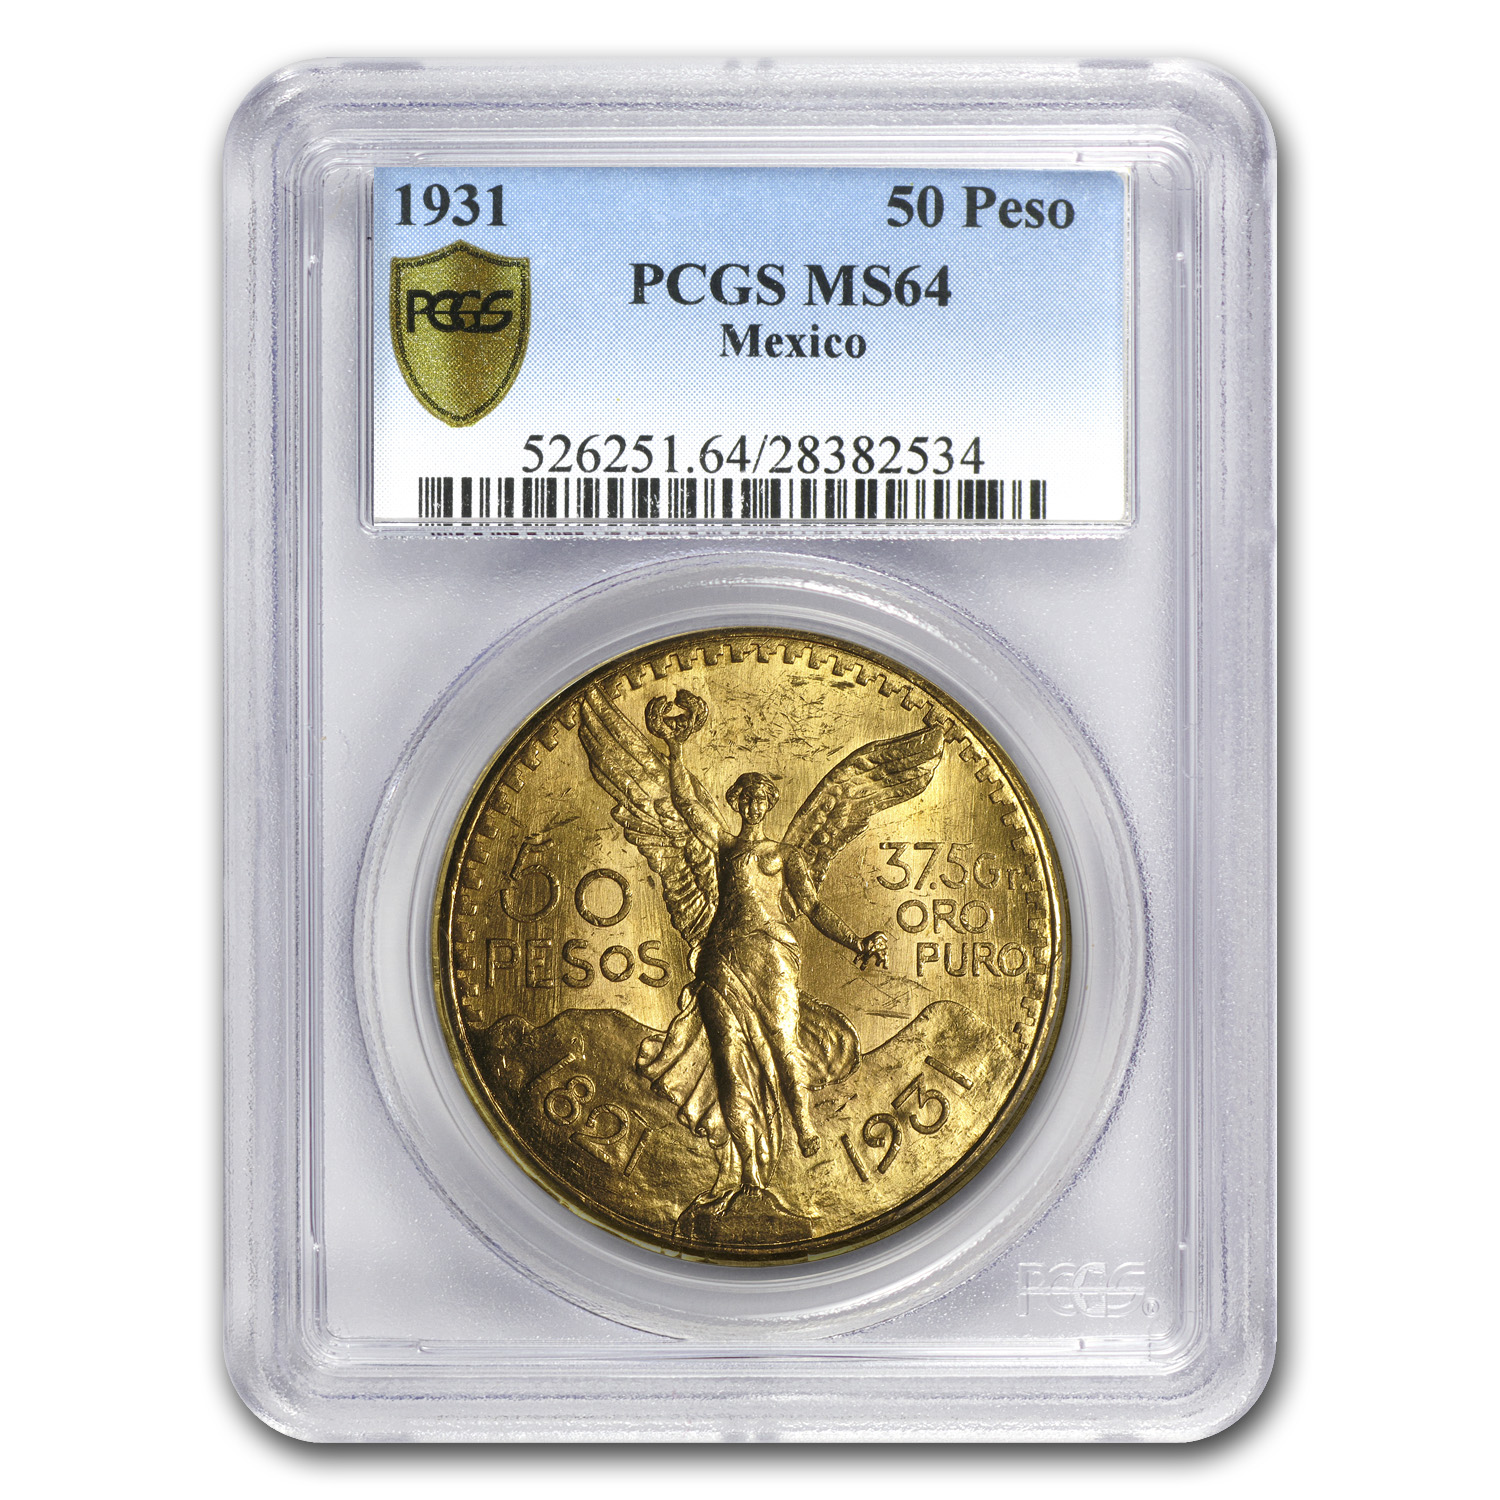 Mexico 1931 50 Pesos Gold Coin - MS-64 PCGS